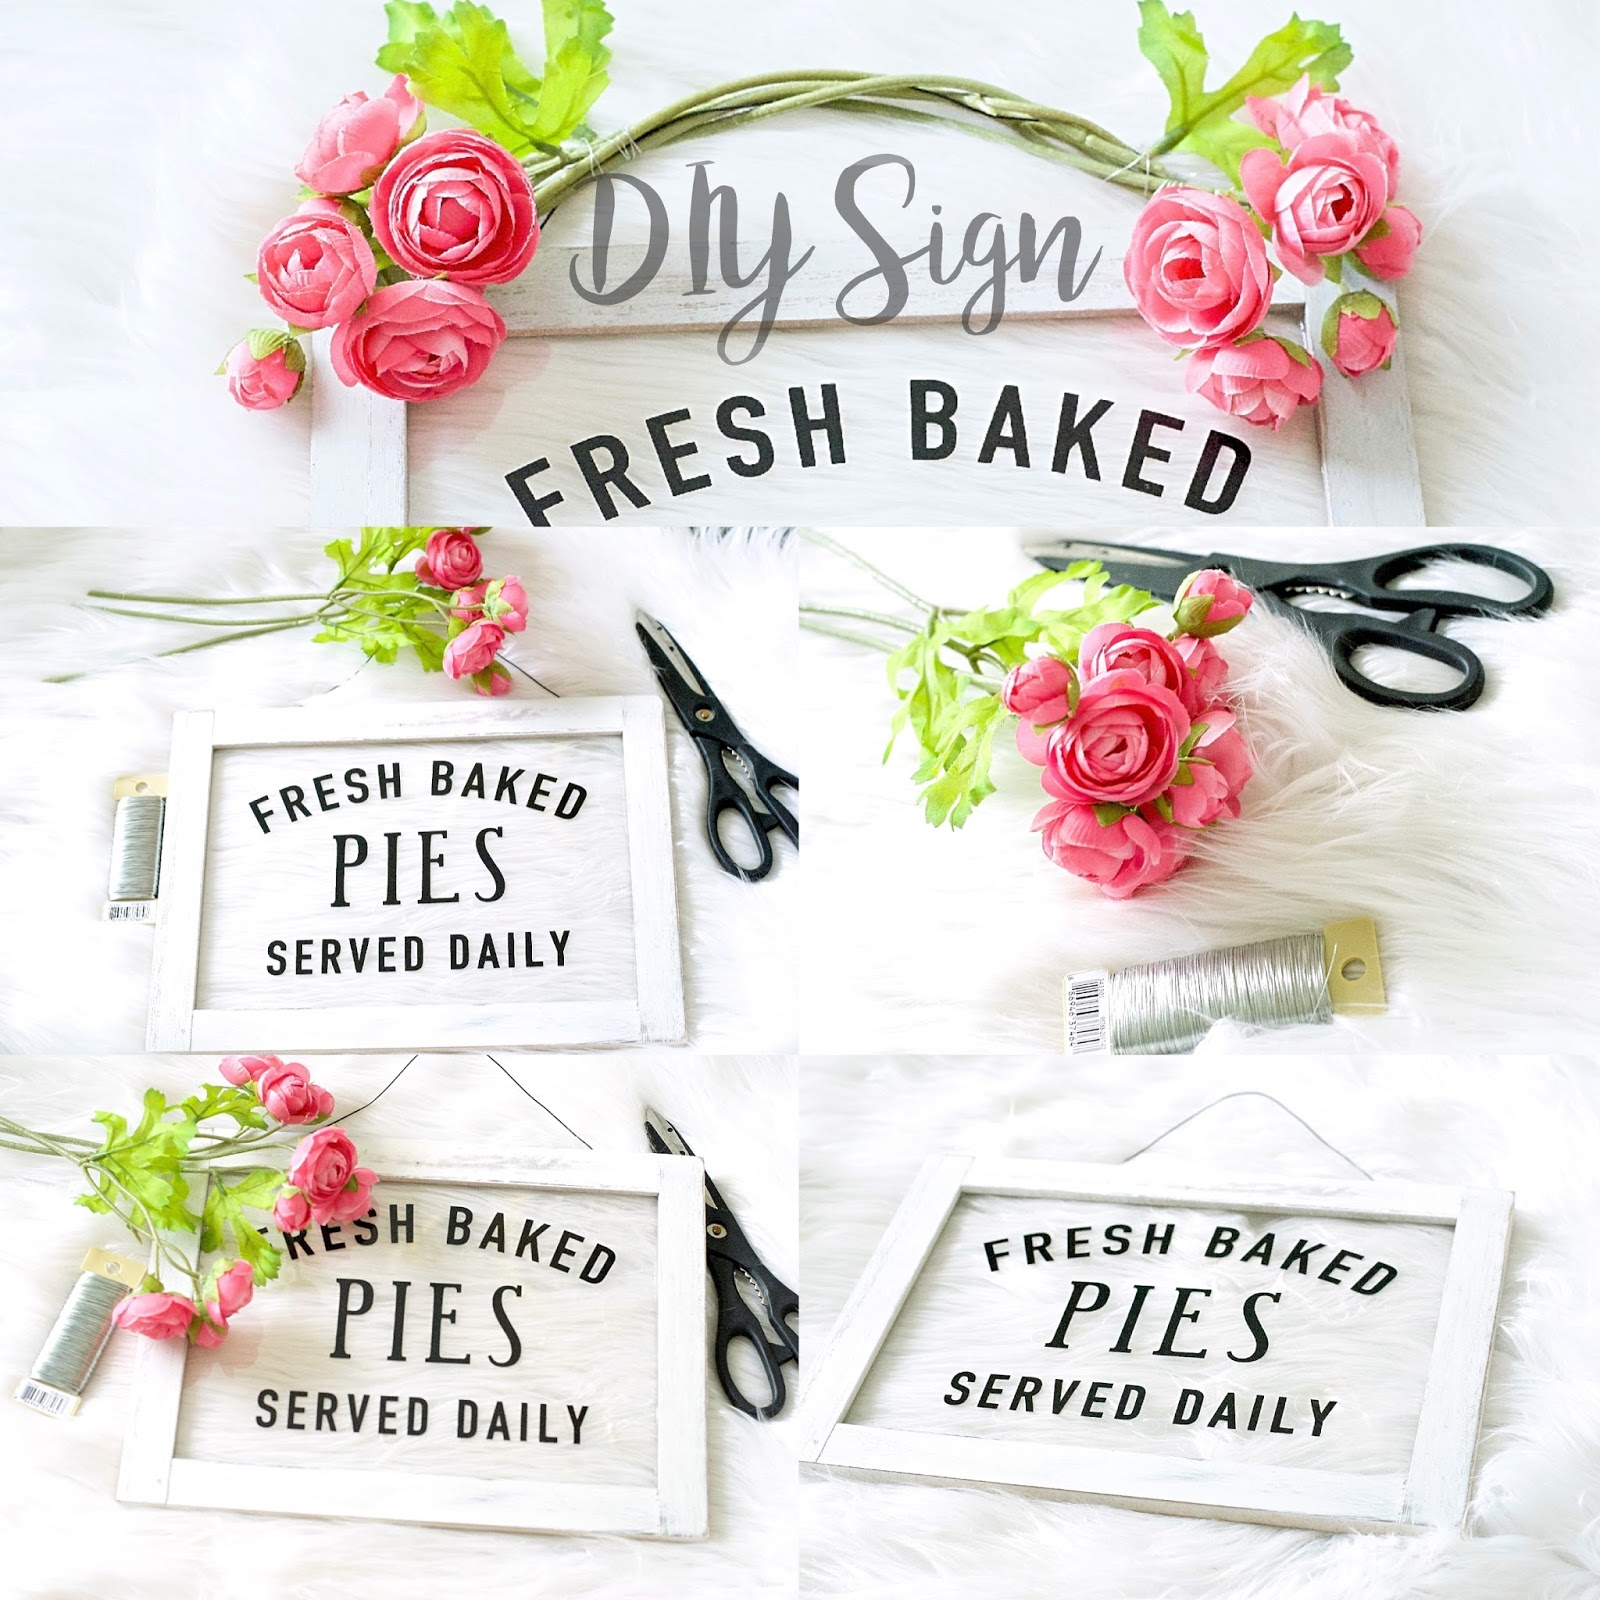 Fresh Baked Pies Served Daily Sign | PRETTY TWINKLE PARTY